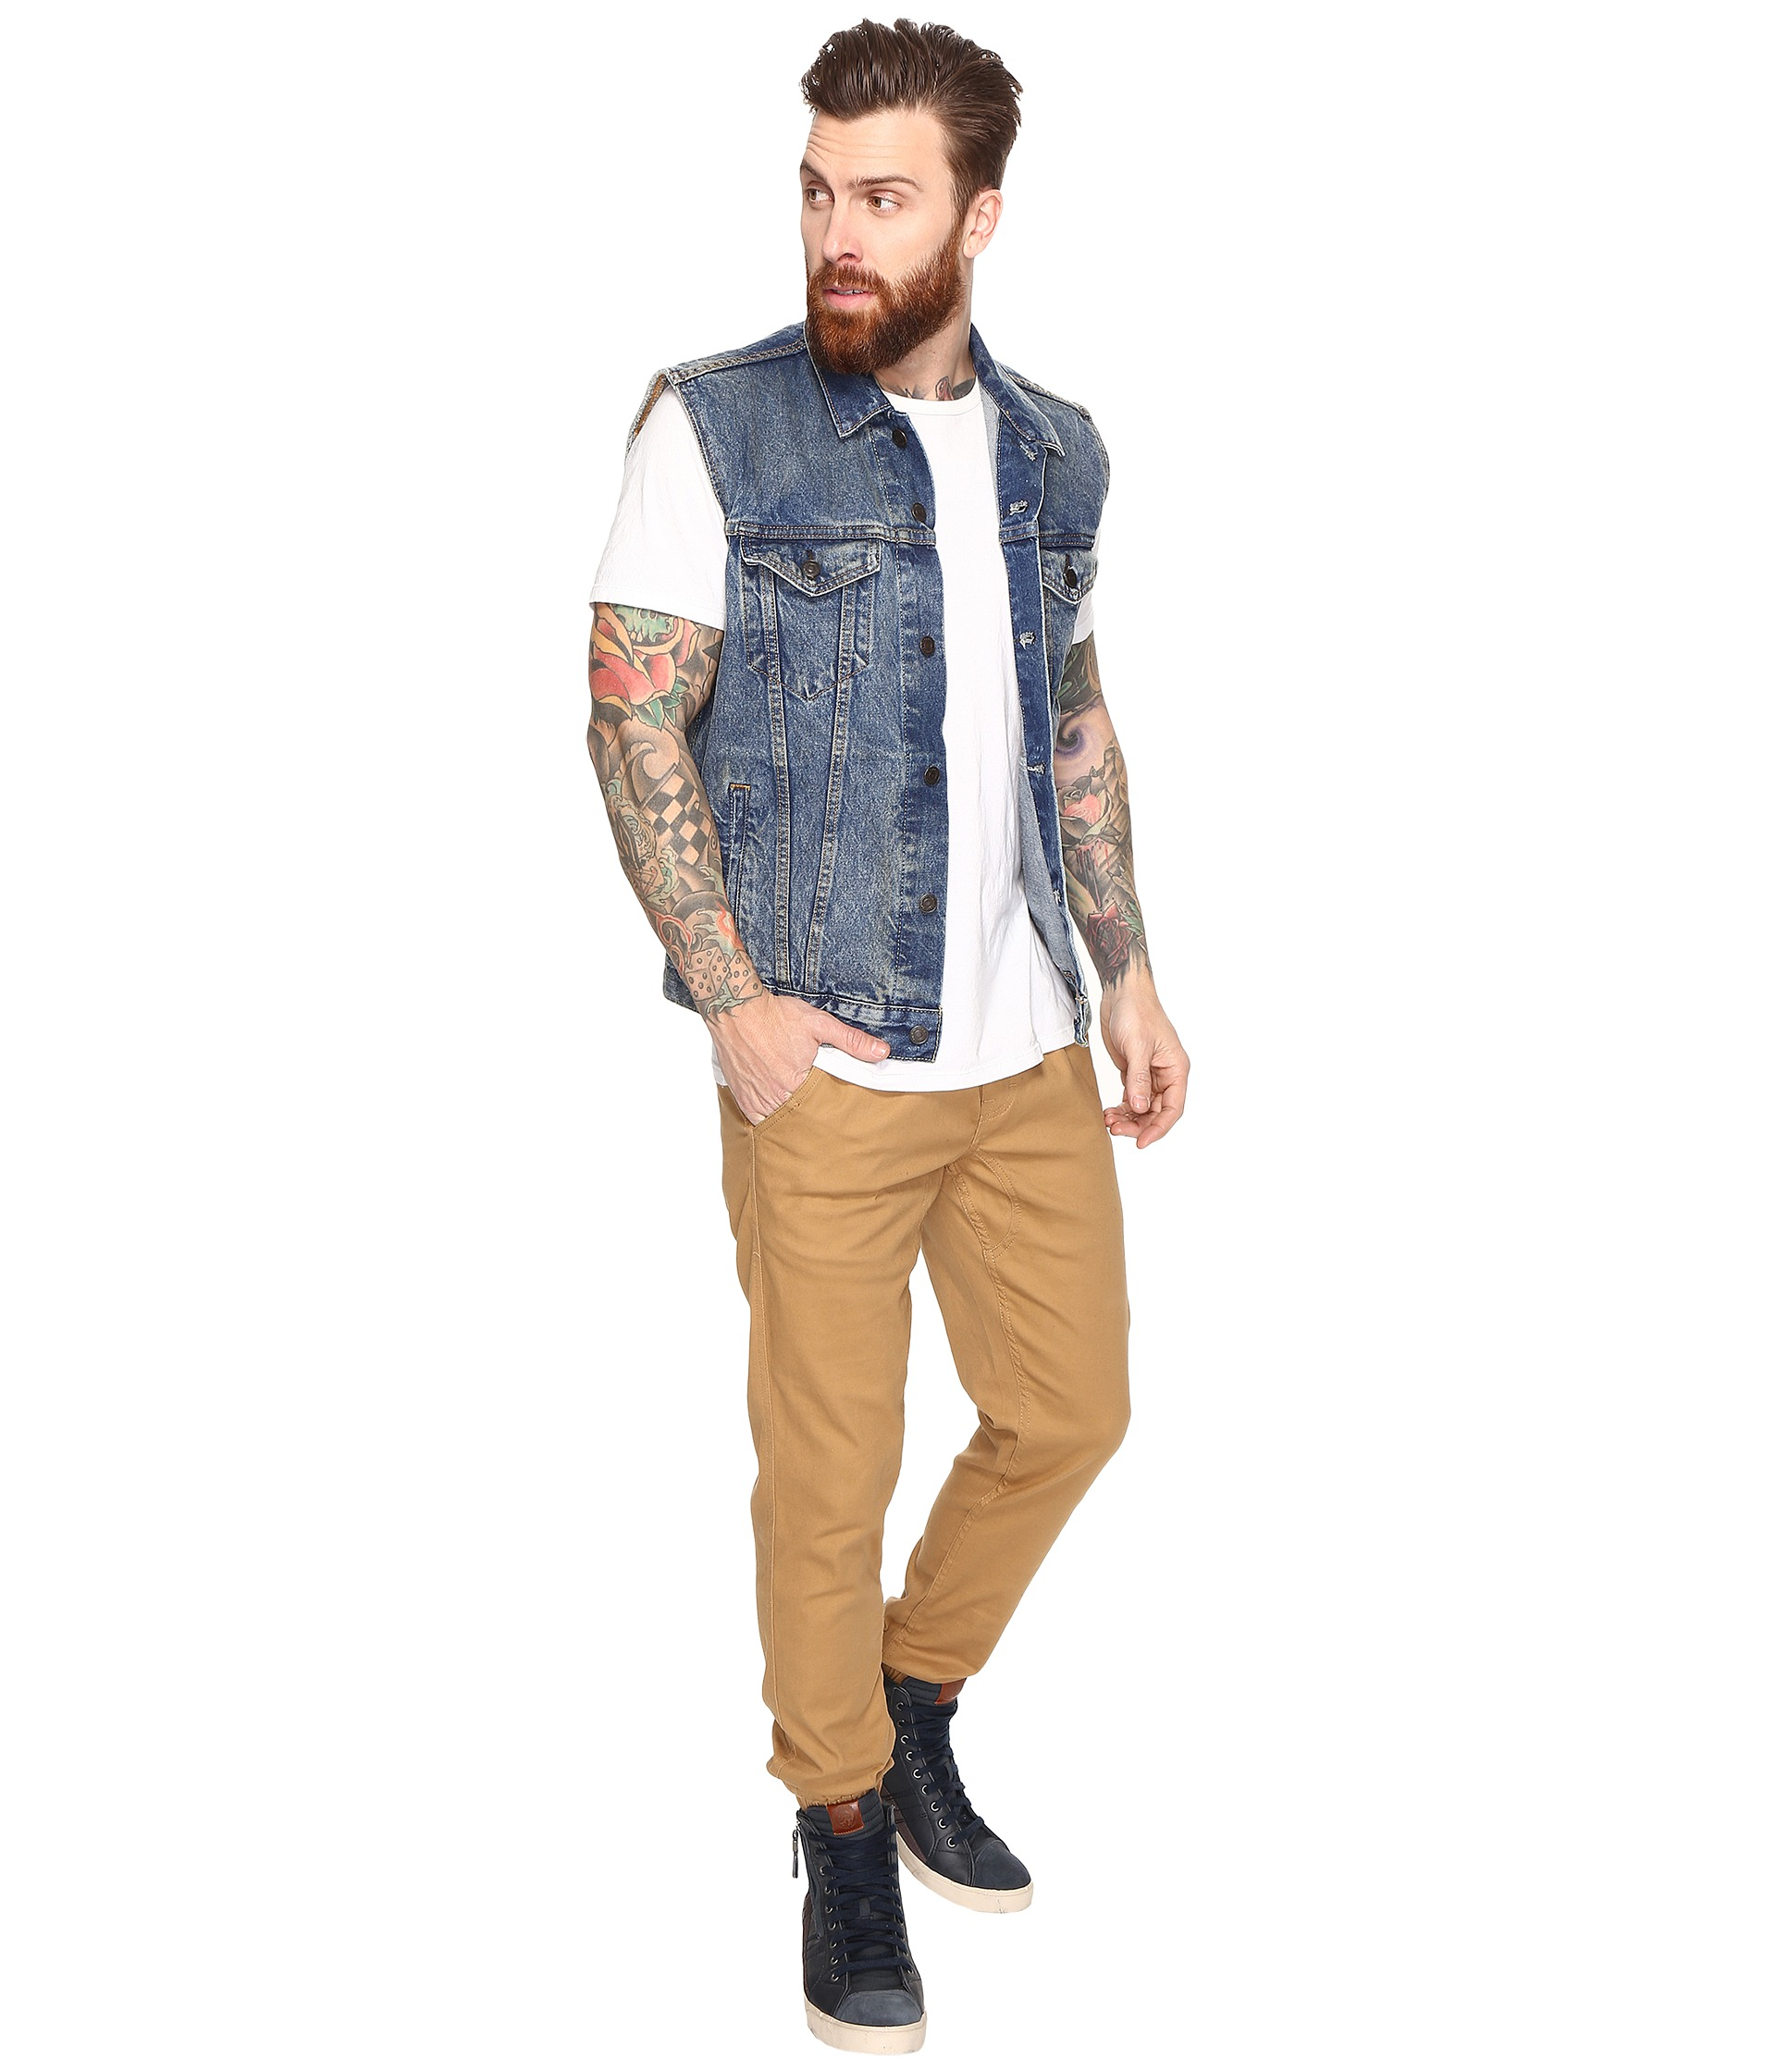 The trucker jacket has been an American fashion staple for well over years. What started as a workwear necessity has evolved slowly into a fashion staple that's defined the look of cowboys, punks, surfers, and all-American attire over the decades.